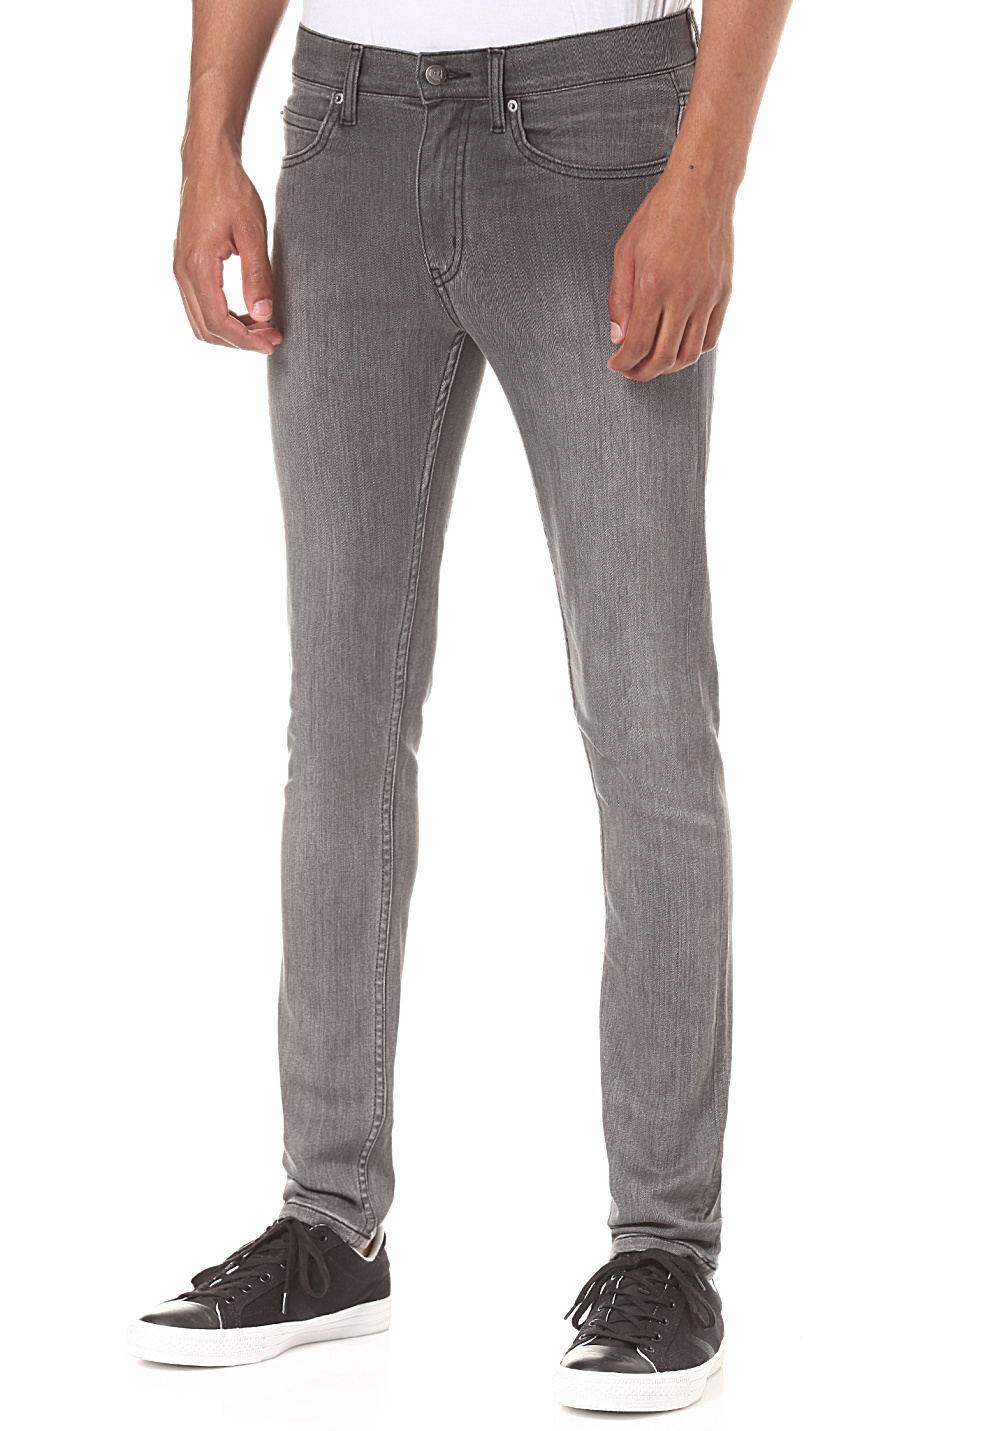 Cheap MondayTight - Denim Jeans for Men - Grey good ...